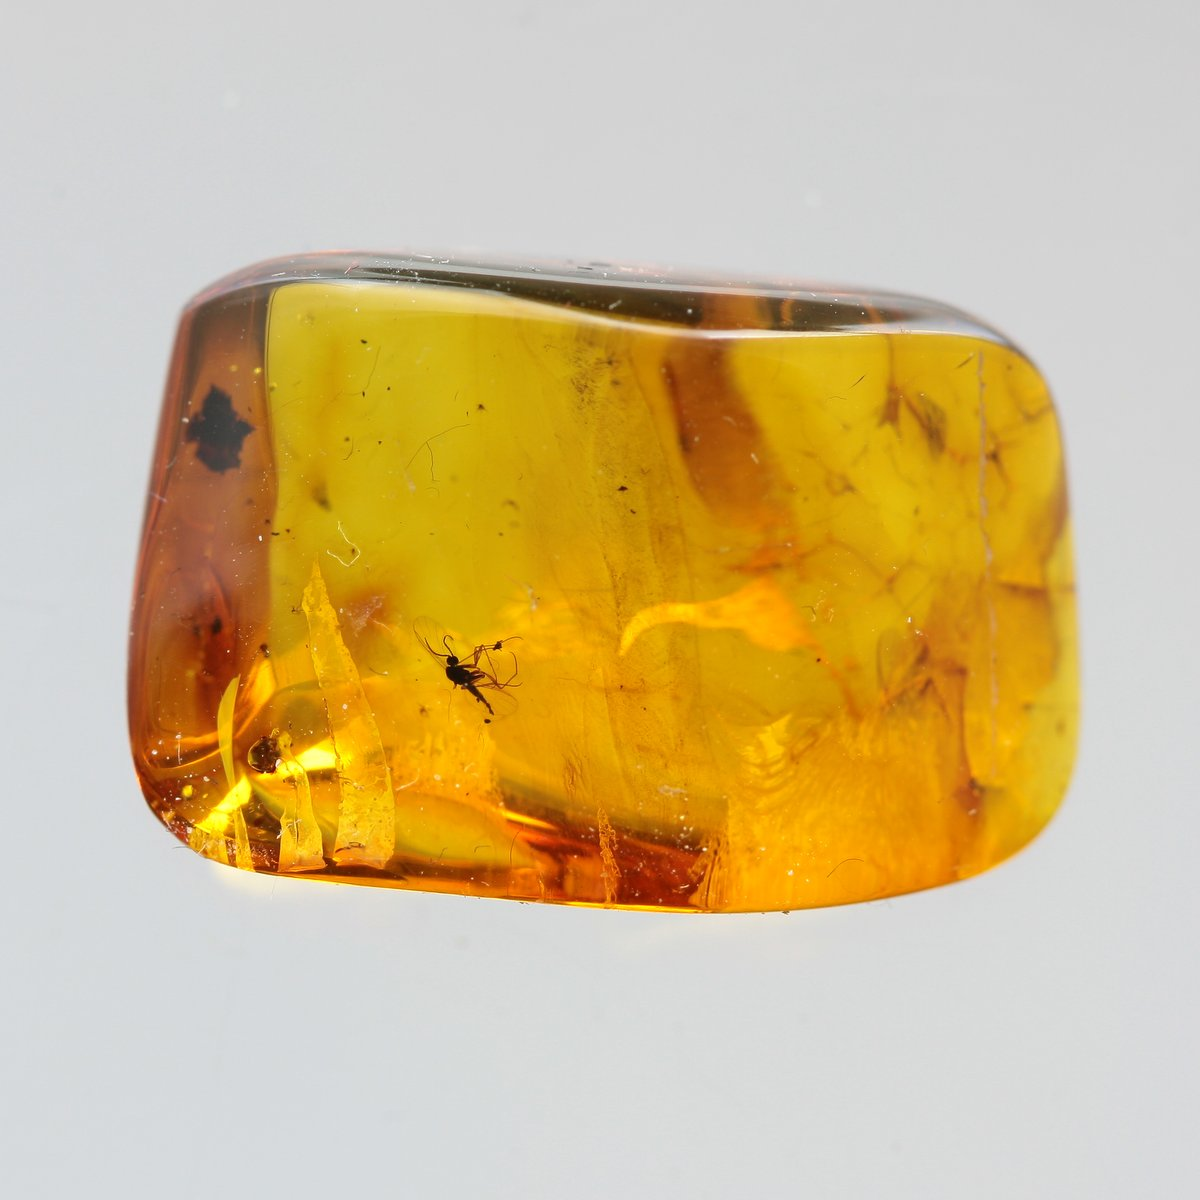 Amber Piece With Insect Inclusion Fossil inside Genuine Natural Baltic Amber piece Insects 3,8g 4219